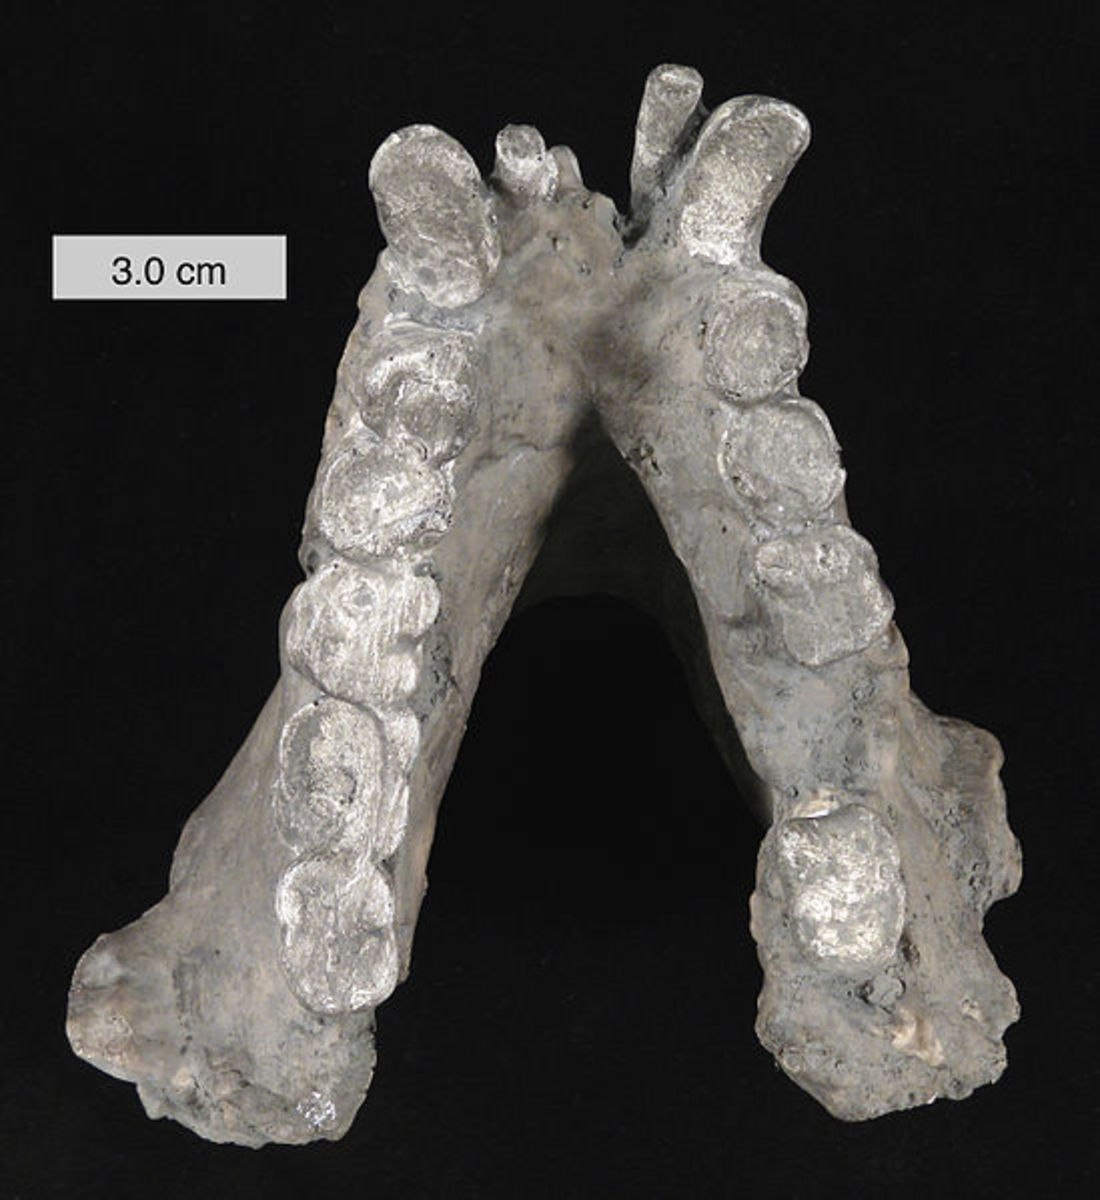 Even after millions of years, little fossil evidence exists for Gigantopithecus Blacki.